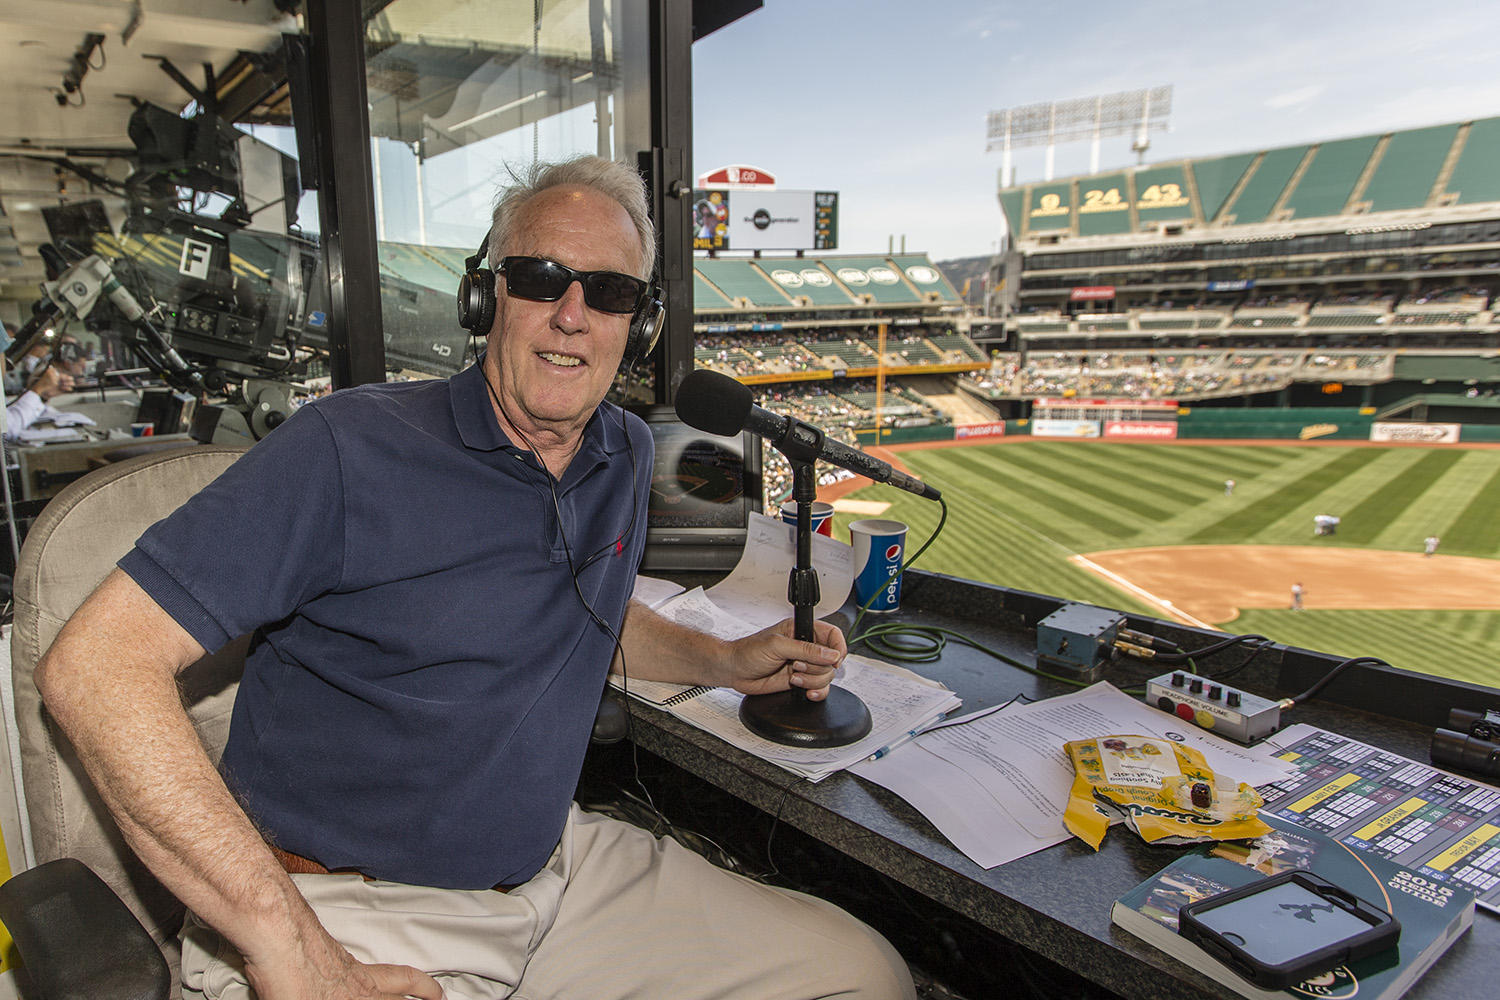 The 2017 season will be Ken Korach's 22nd season broadcasting A's baseball, 10 of which, from 1996 to 2005, were spent working alongside Bill King. (Jean Fruth / National Baseball Hall of Fame)